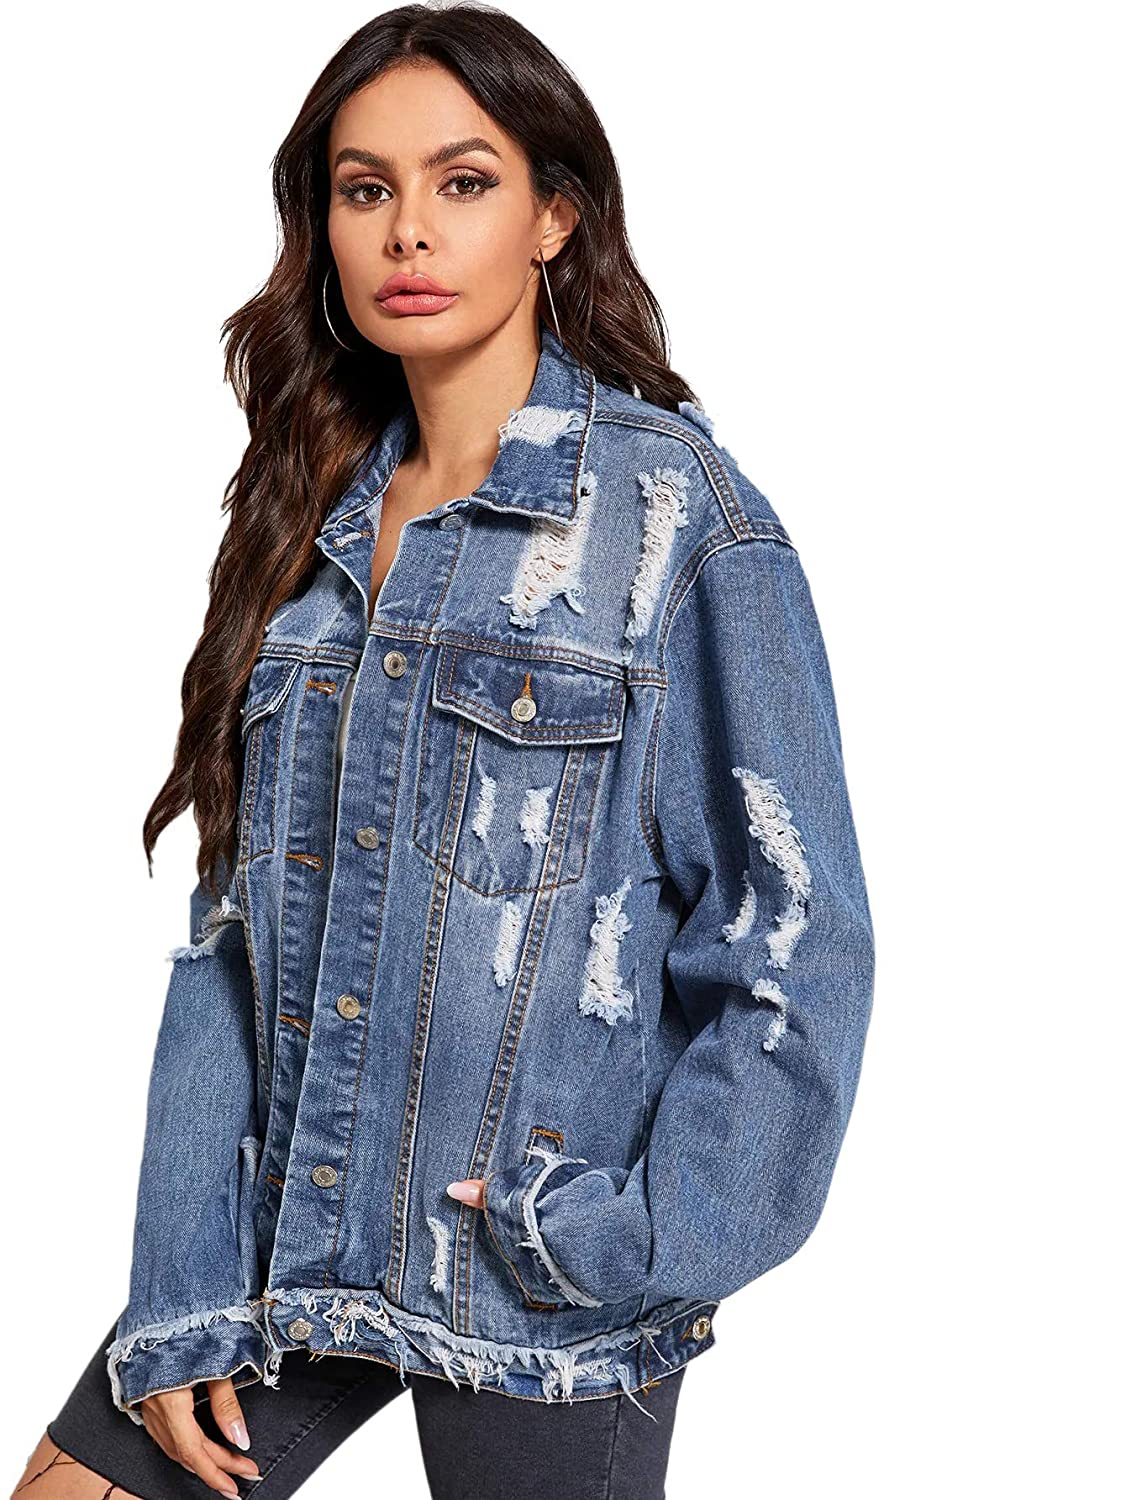 Floerns Womens Ripped Distressed Casual Long Sleeve Denim Jacket